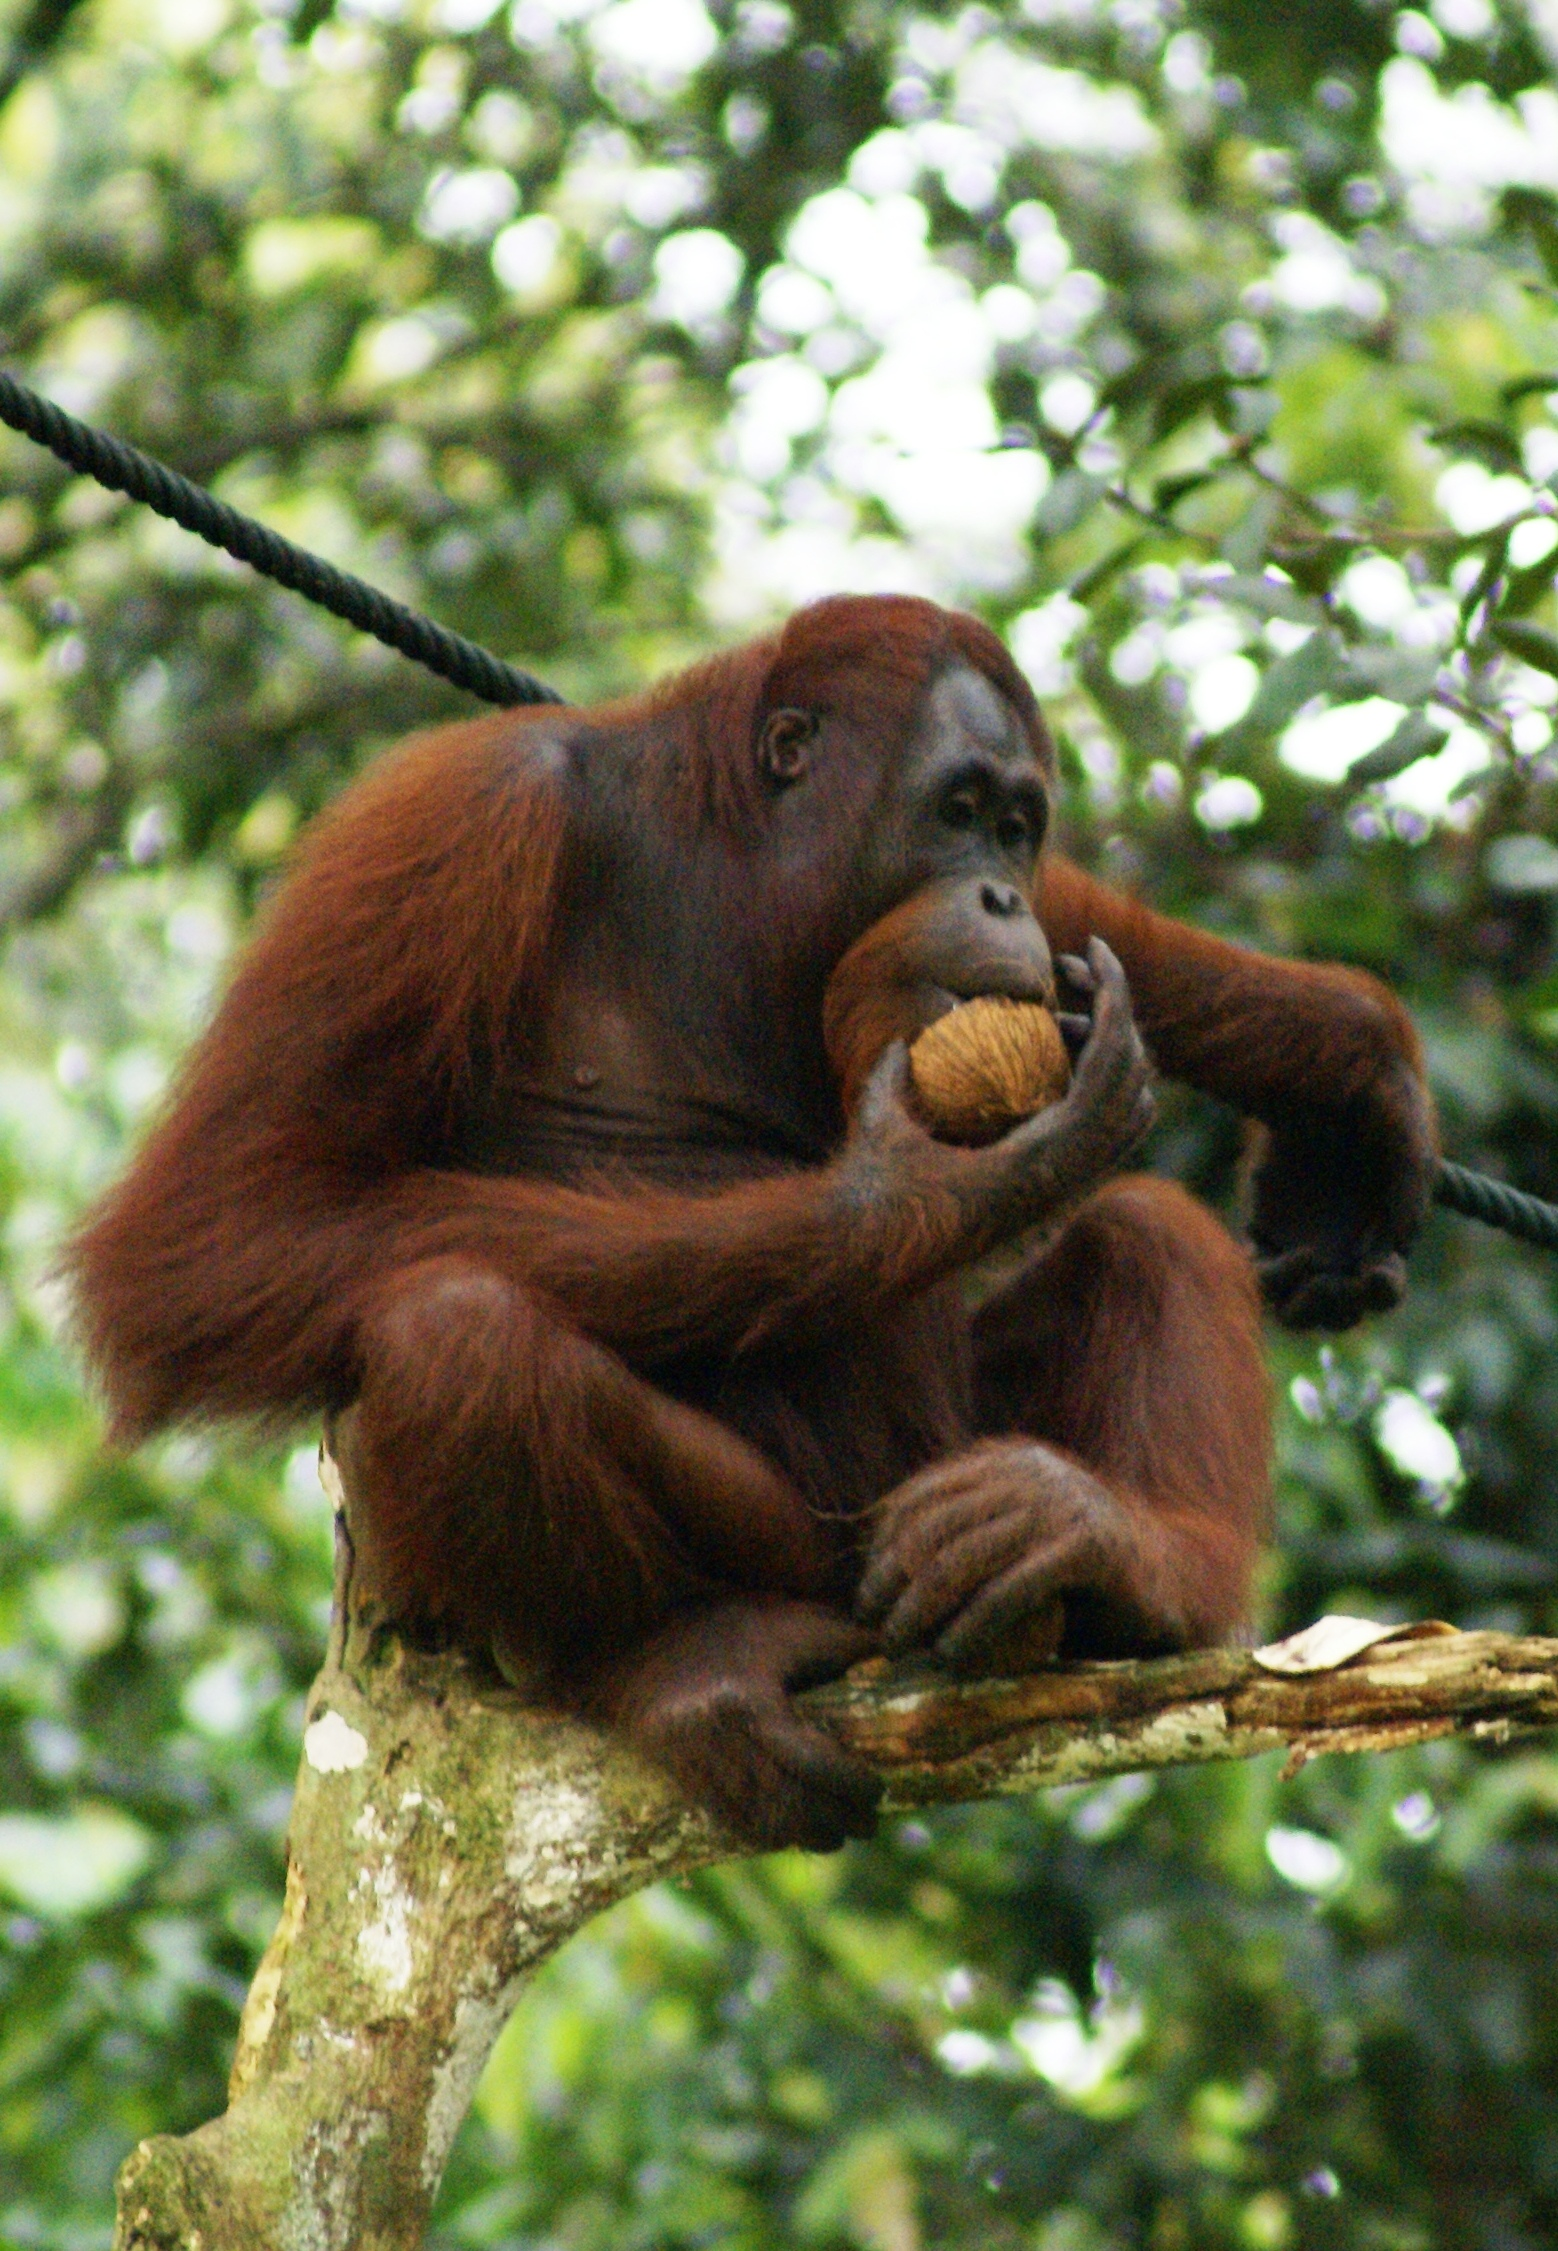 oragutan eating, what are great apes, orangutans endangered, habitat destruction affects apes